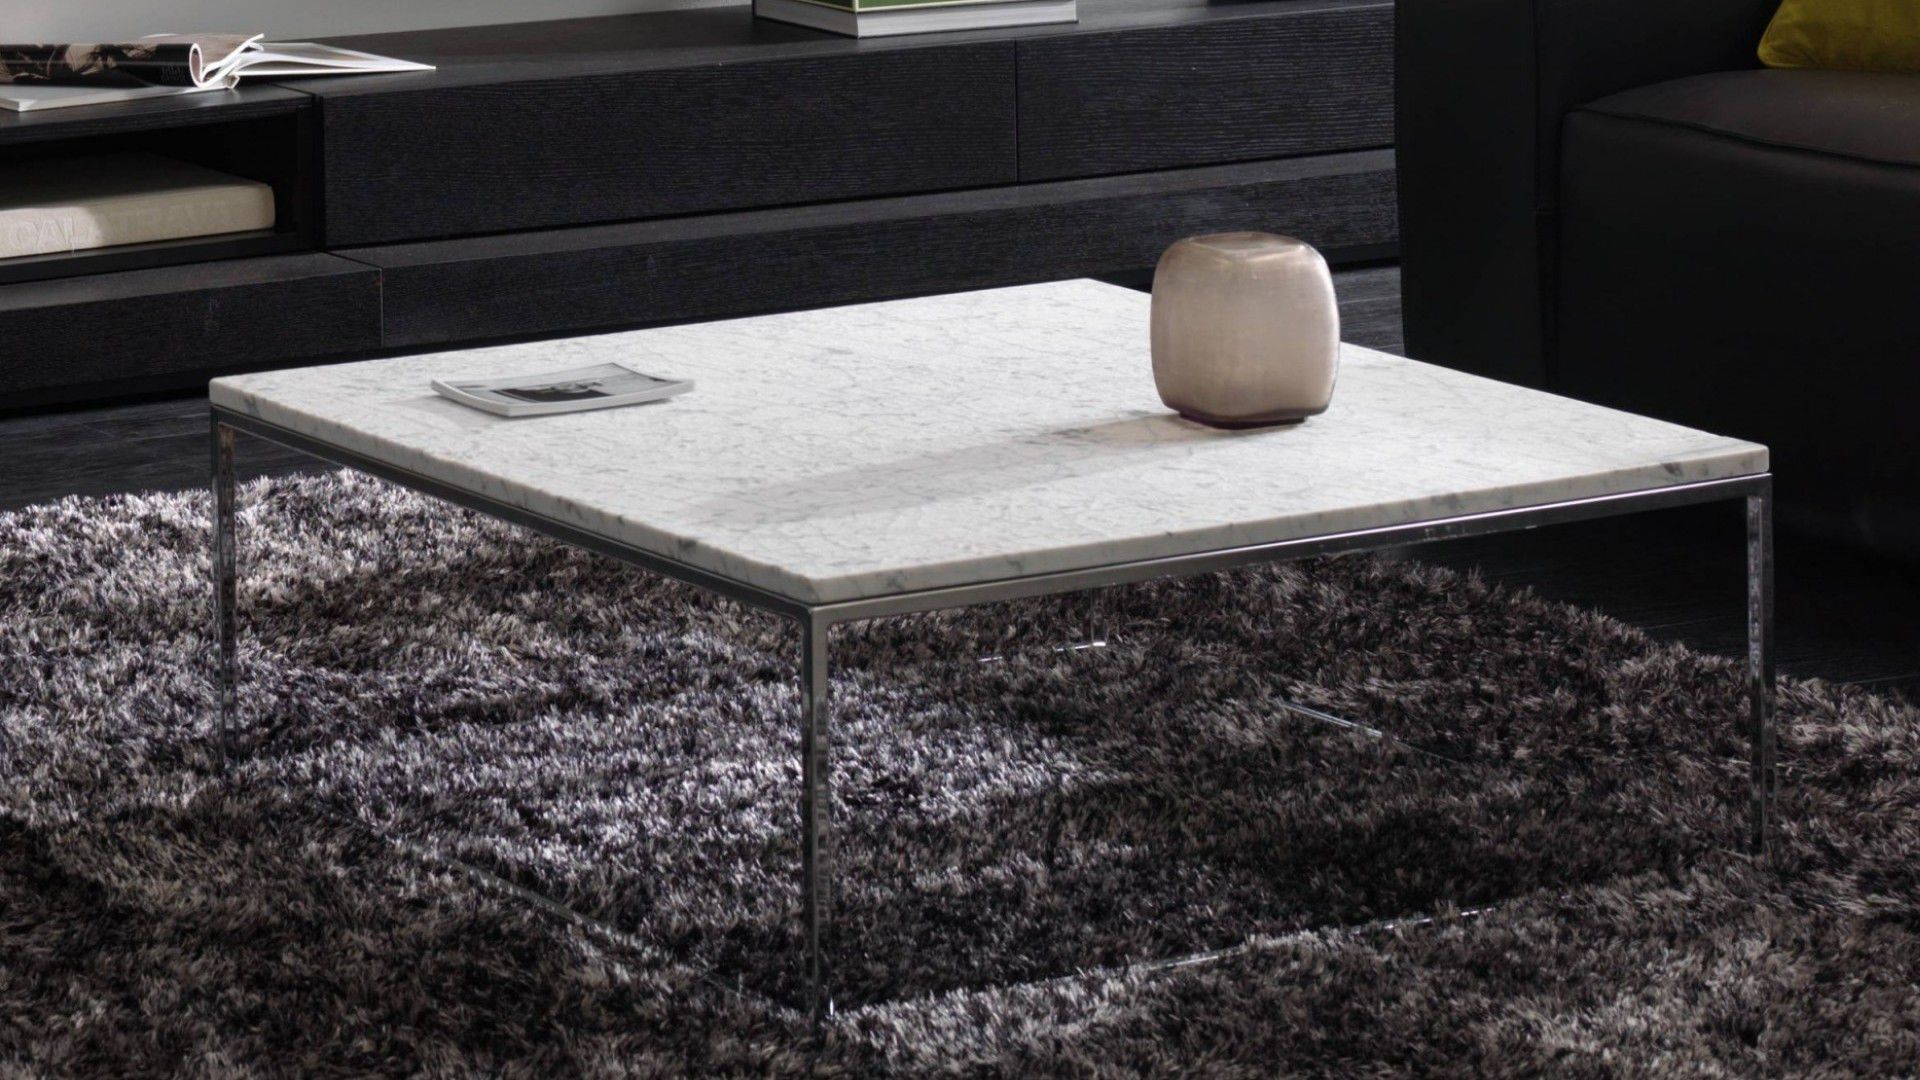 Natuzzi Couchtisch Glas Contemporary Coffee Table Wooden Metal Marble Cabaret